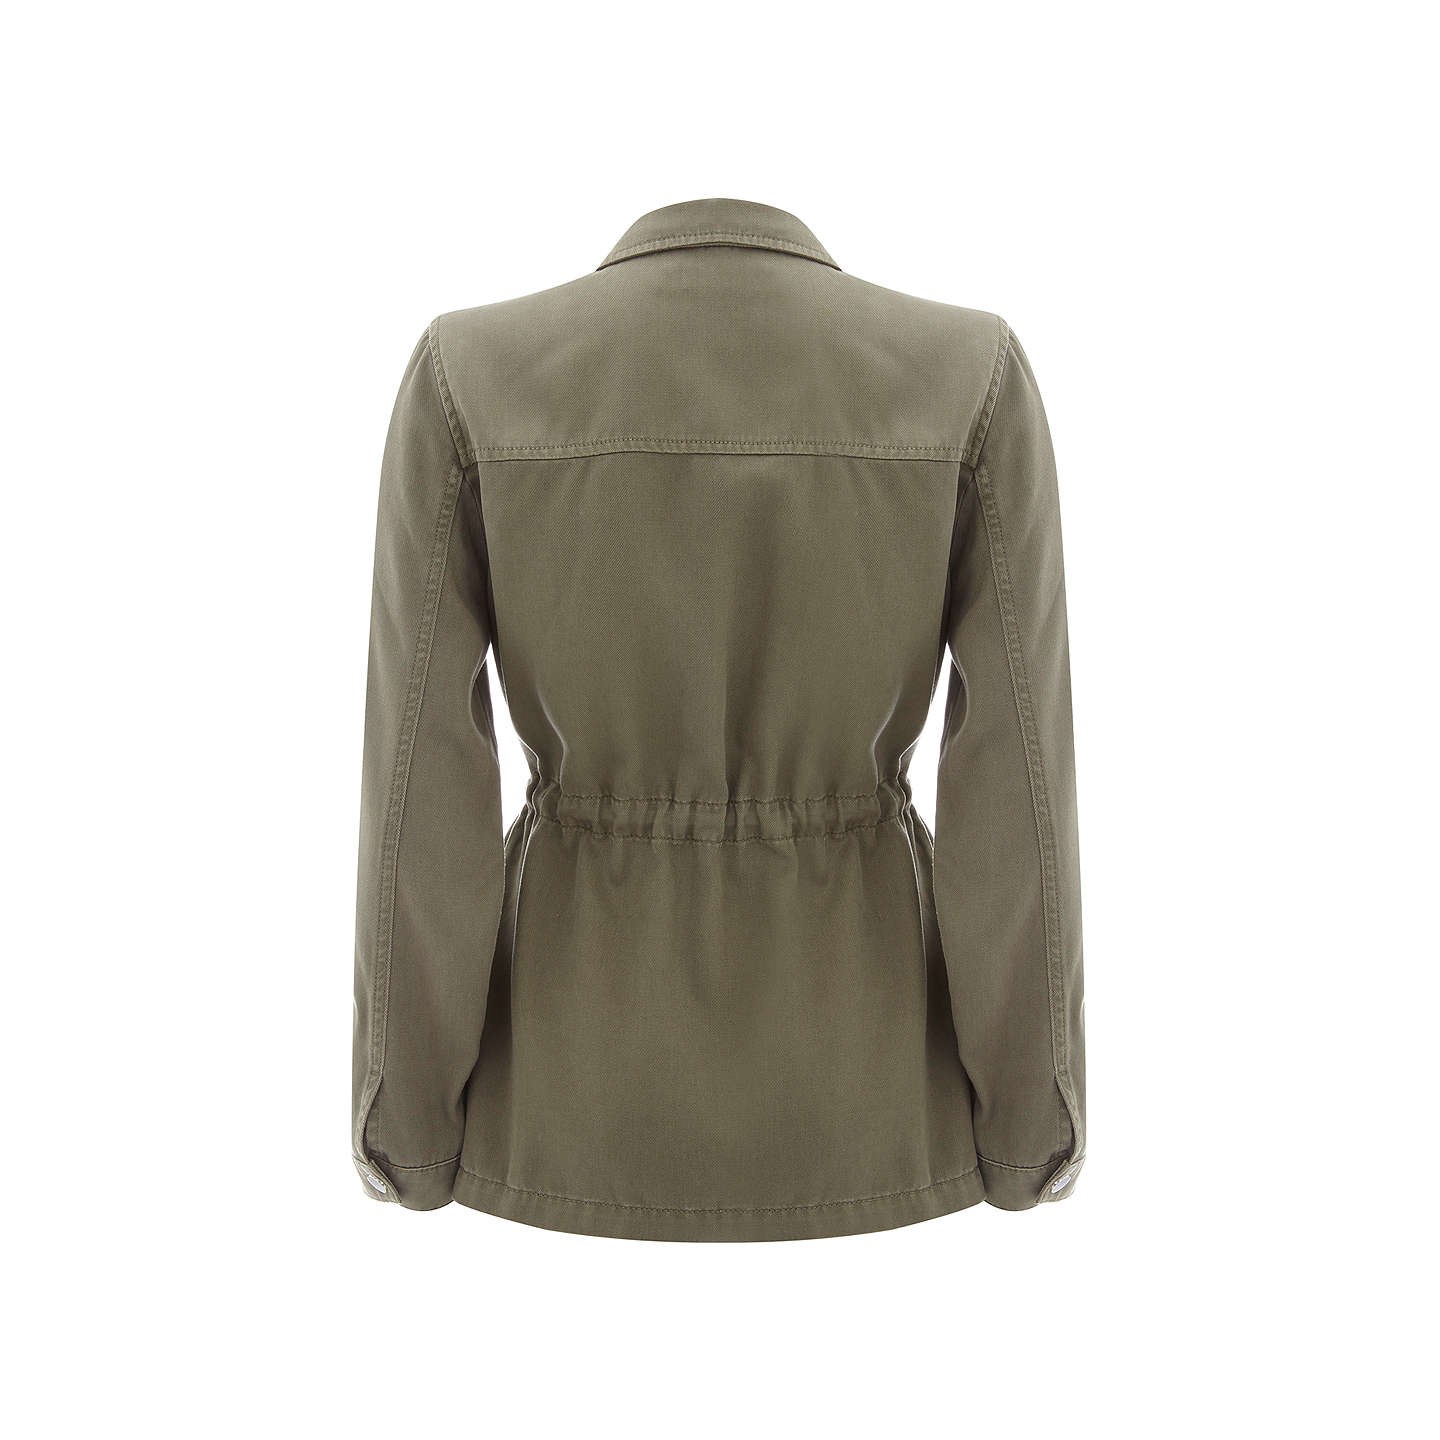 BuyMint Velvet Palm Leaf Embroidered Jacket, Light Green, 6 Online at johnlewis.com